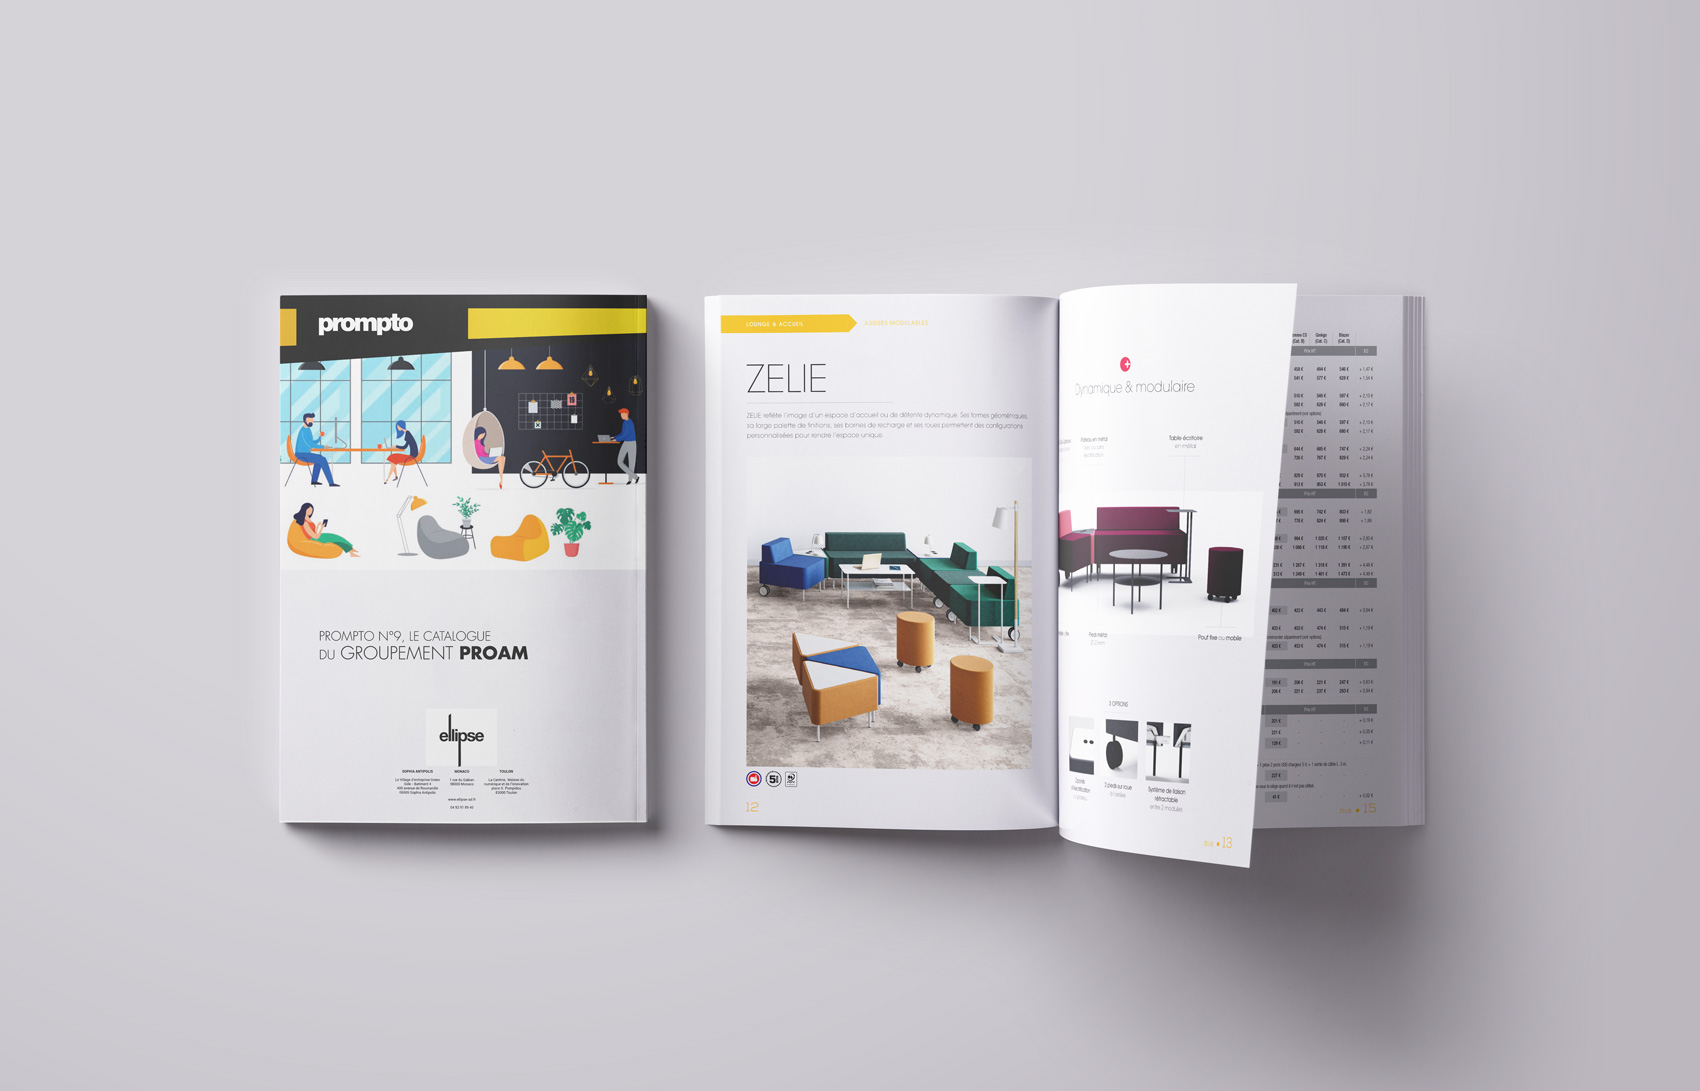 Magazine-Mockup-Presentation-ELLIPSE